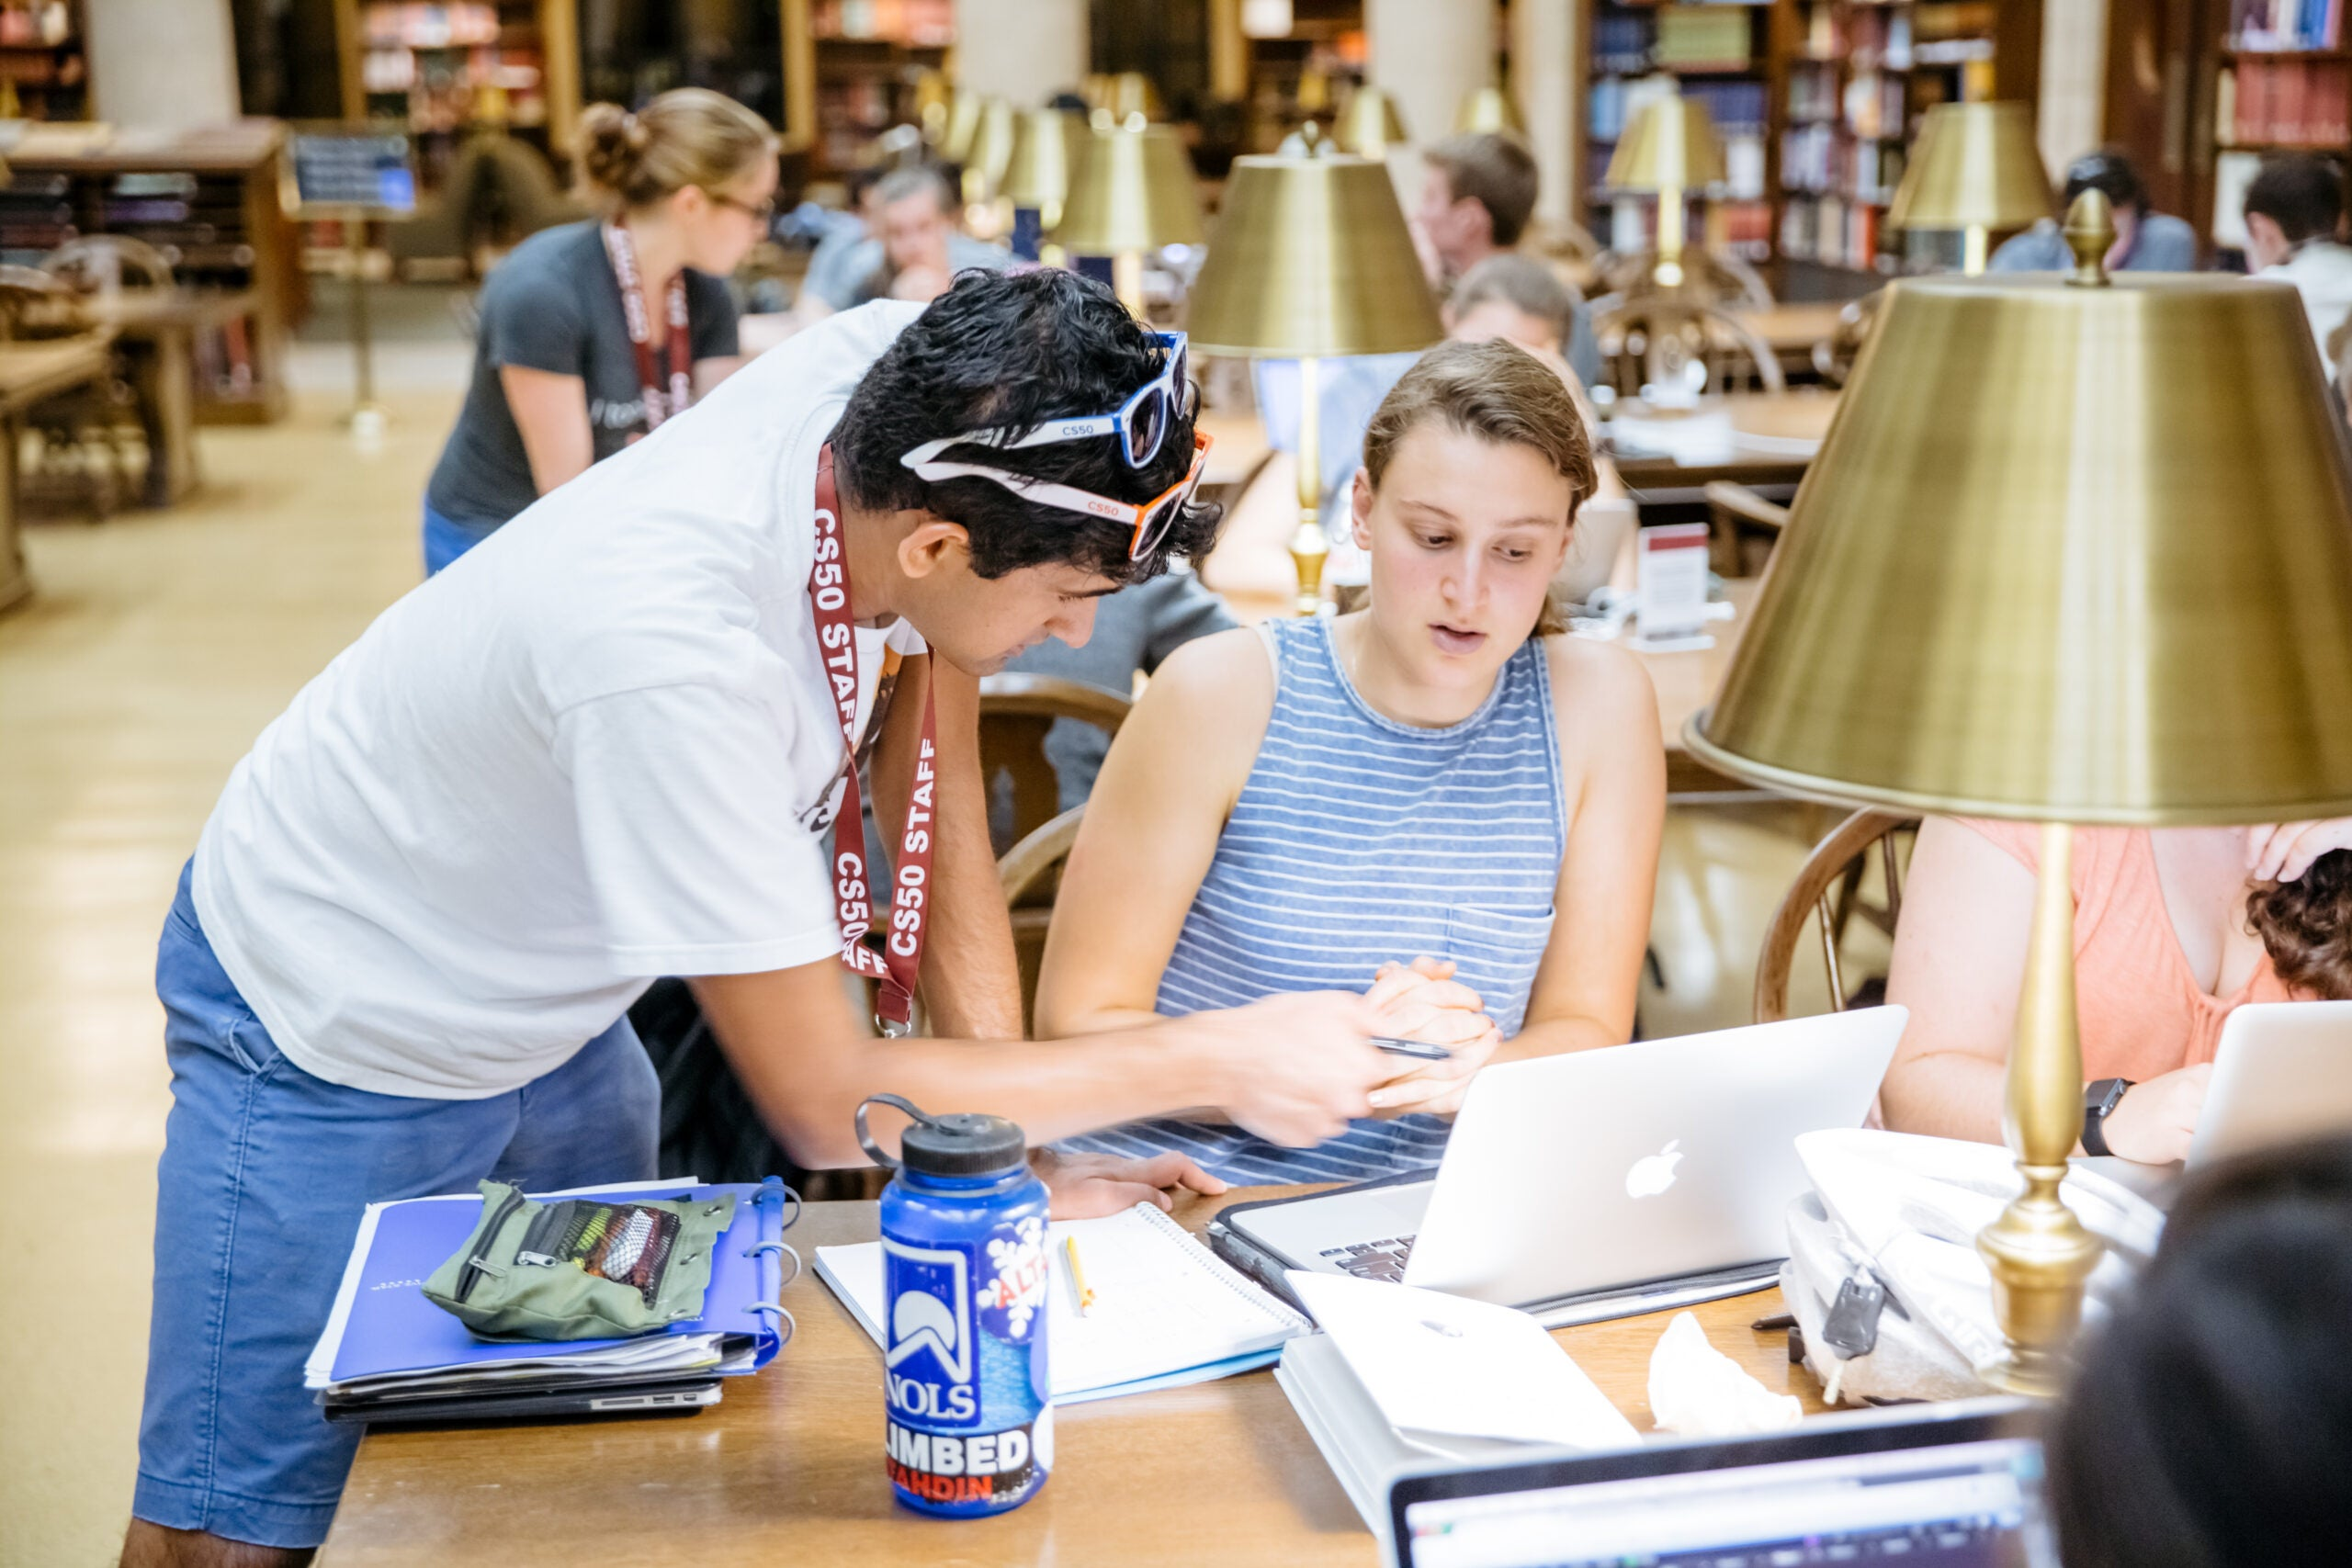 A student leans over another student looking at her laptop at the library.